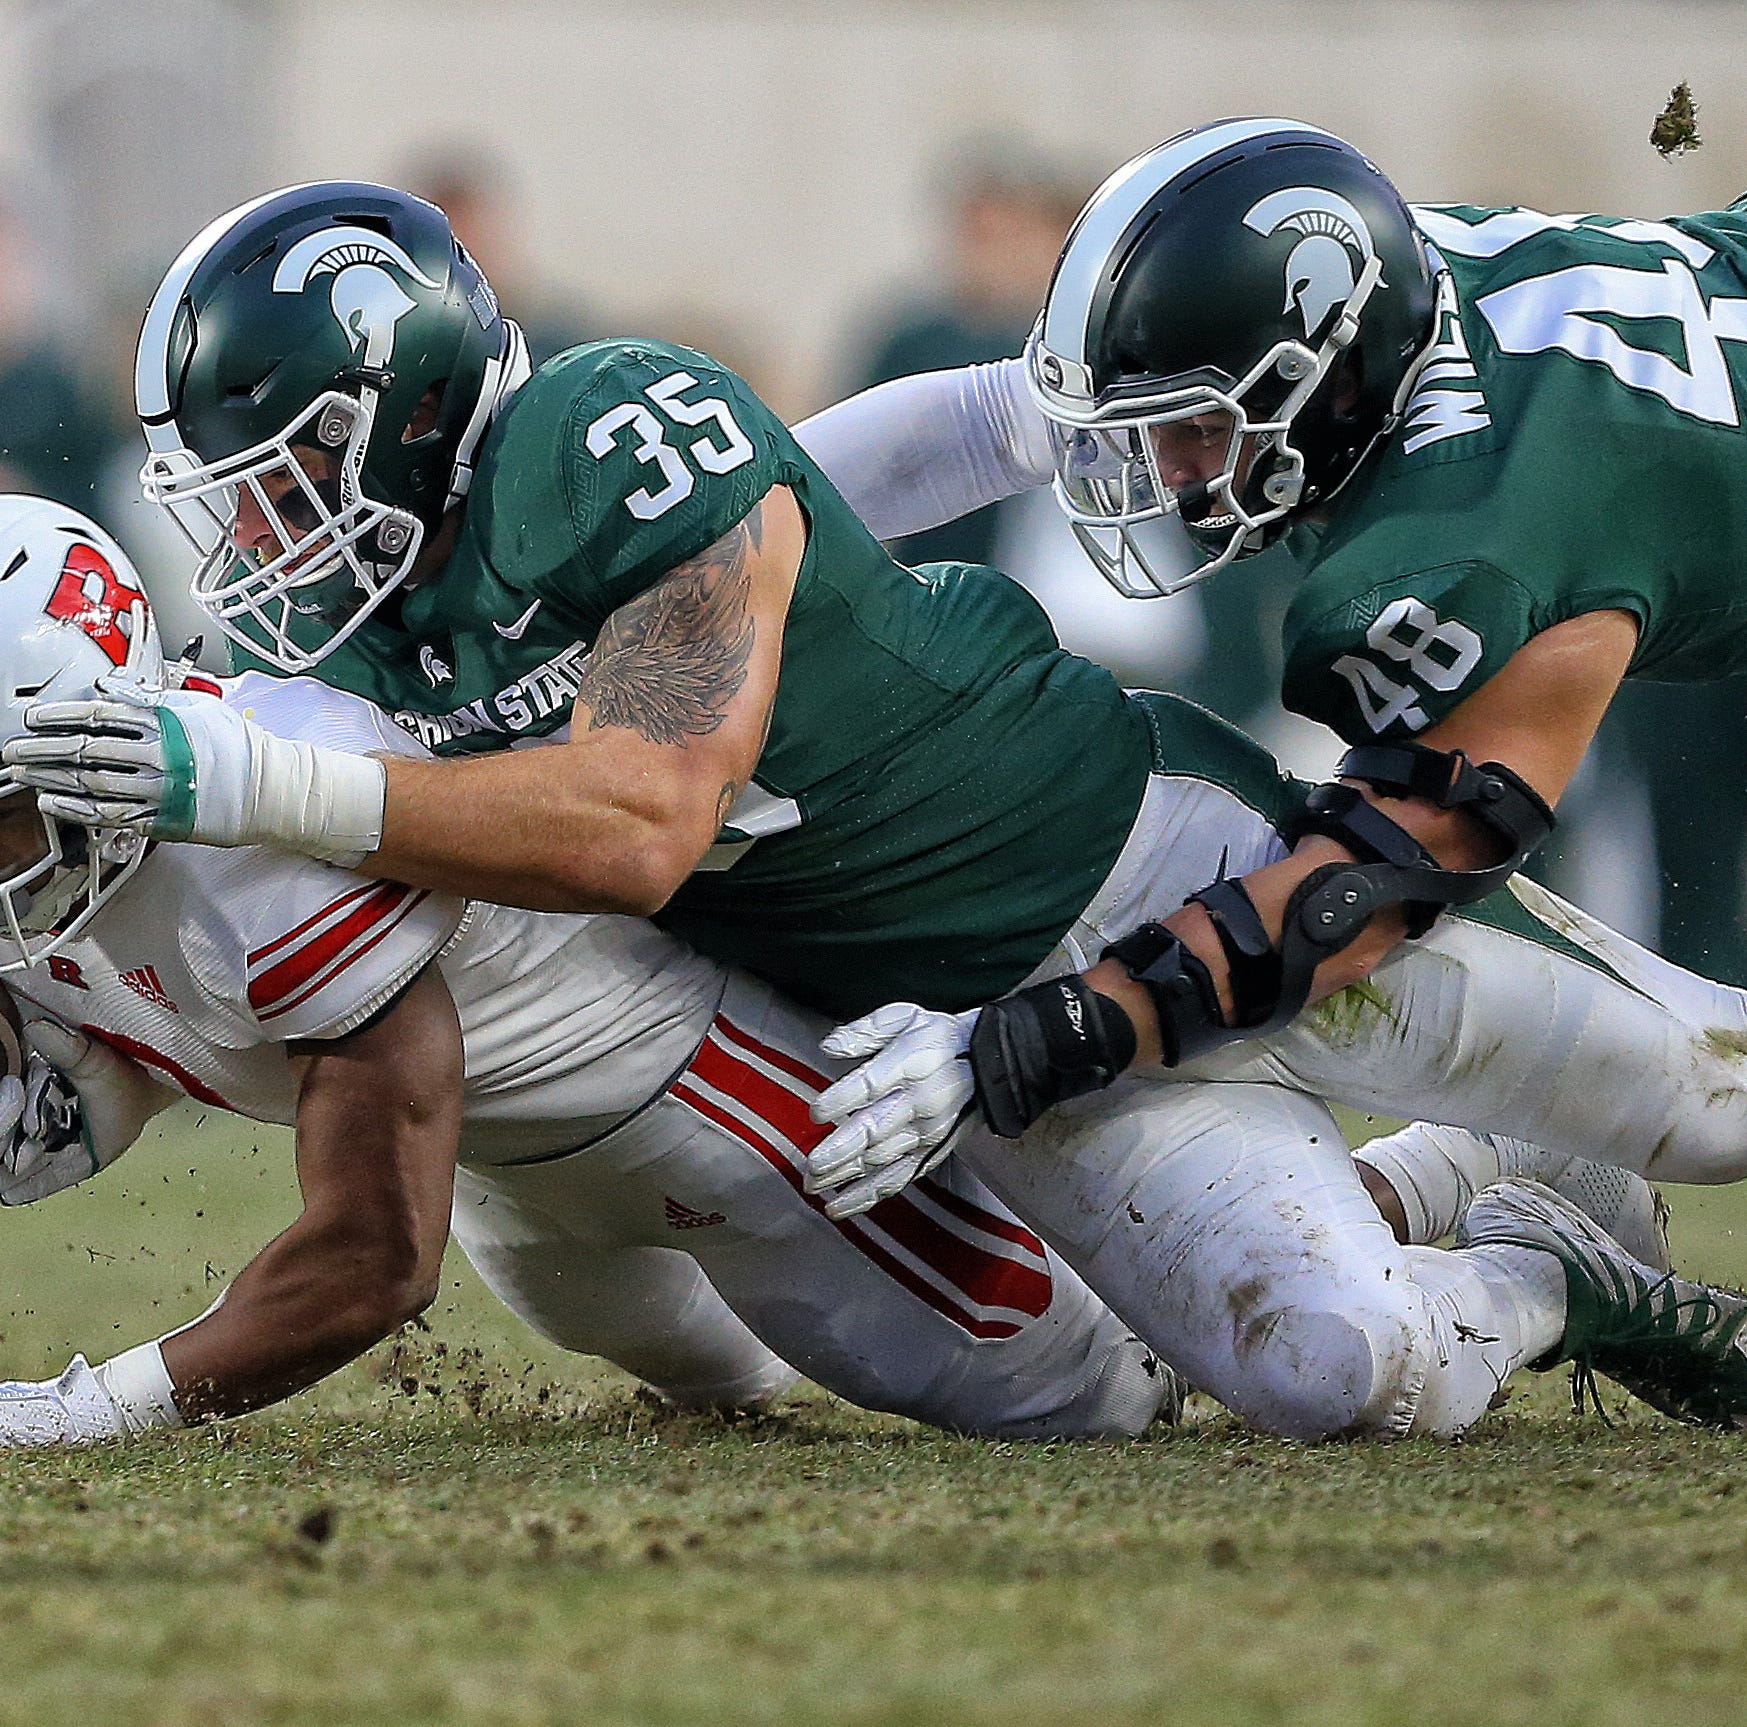 Michigan State football receives high ranking in ESPN FPI preseason poll